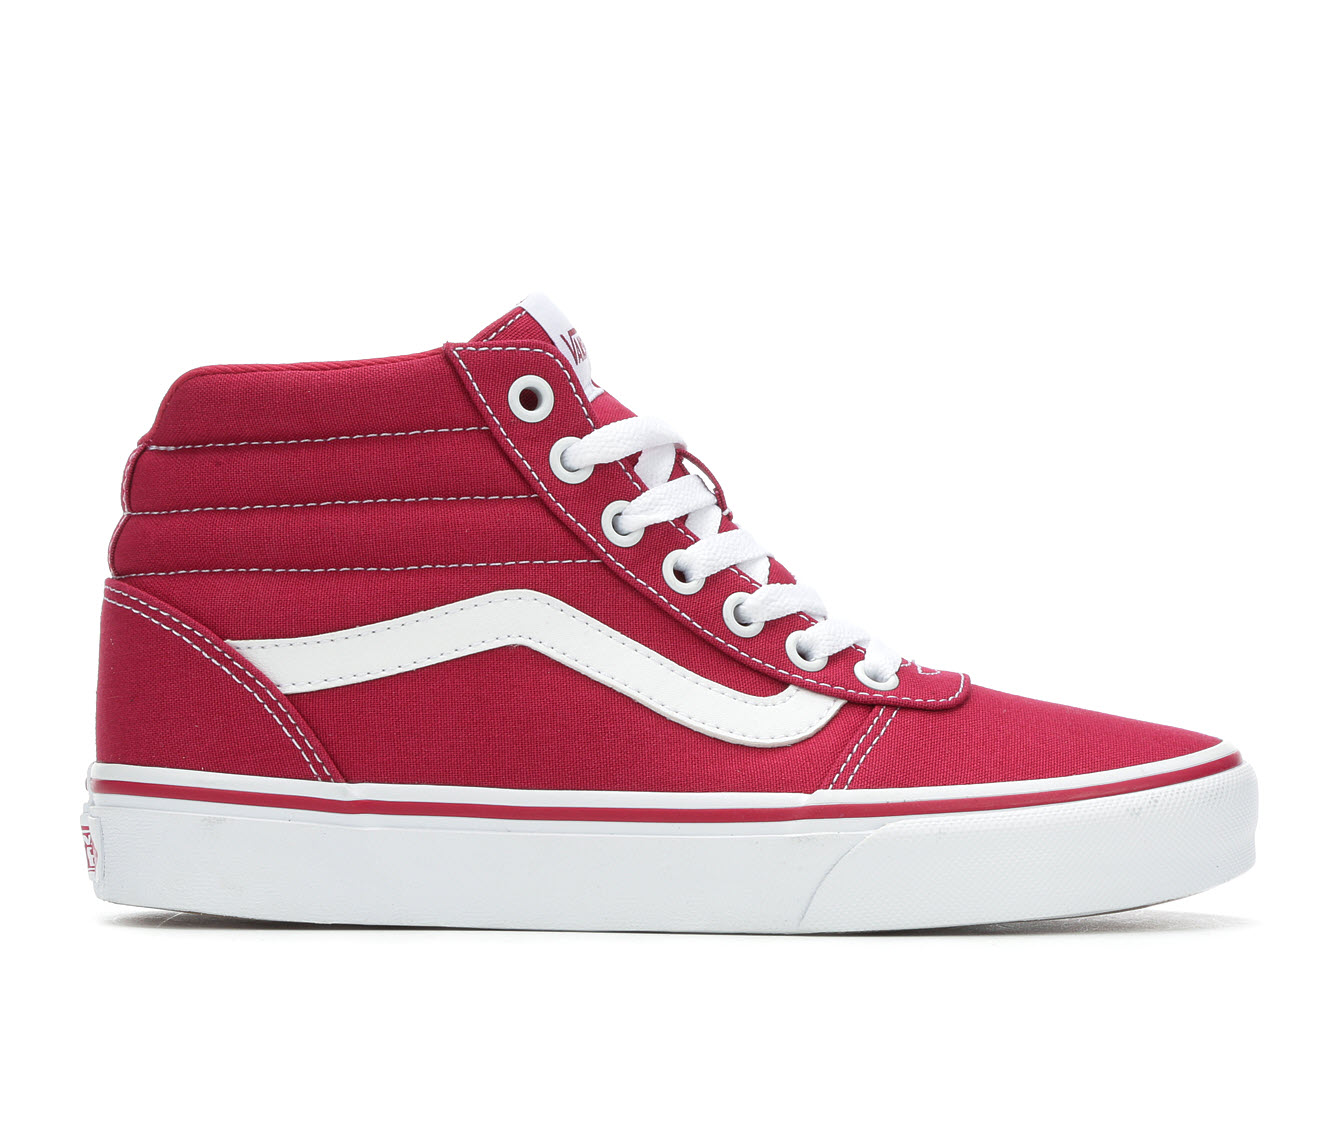 Vans Ward Hi Women's Athletic Shoe (Red)